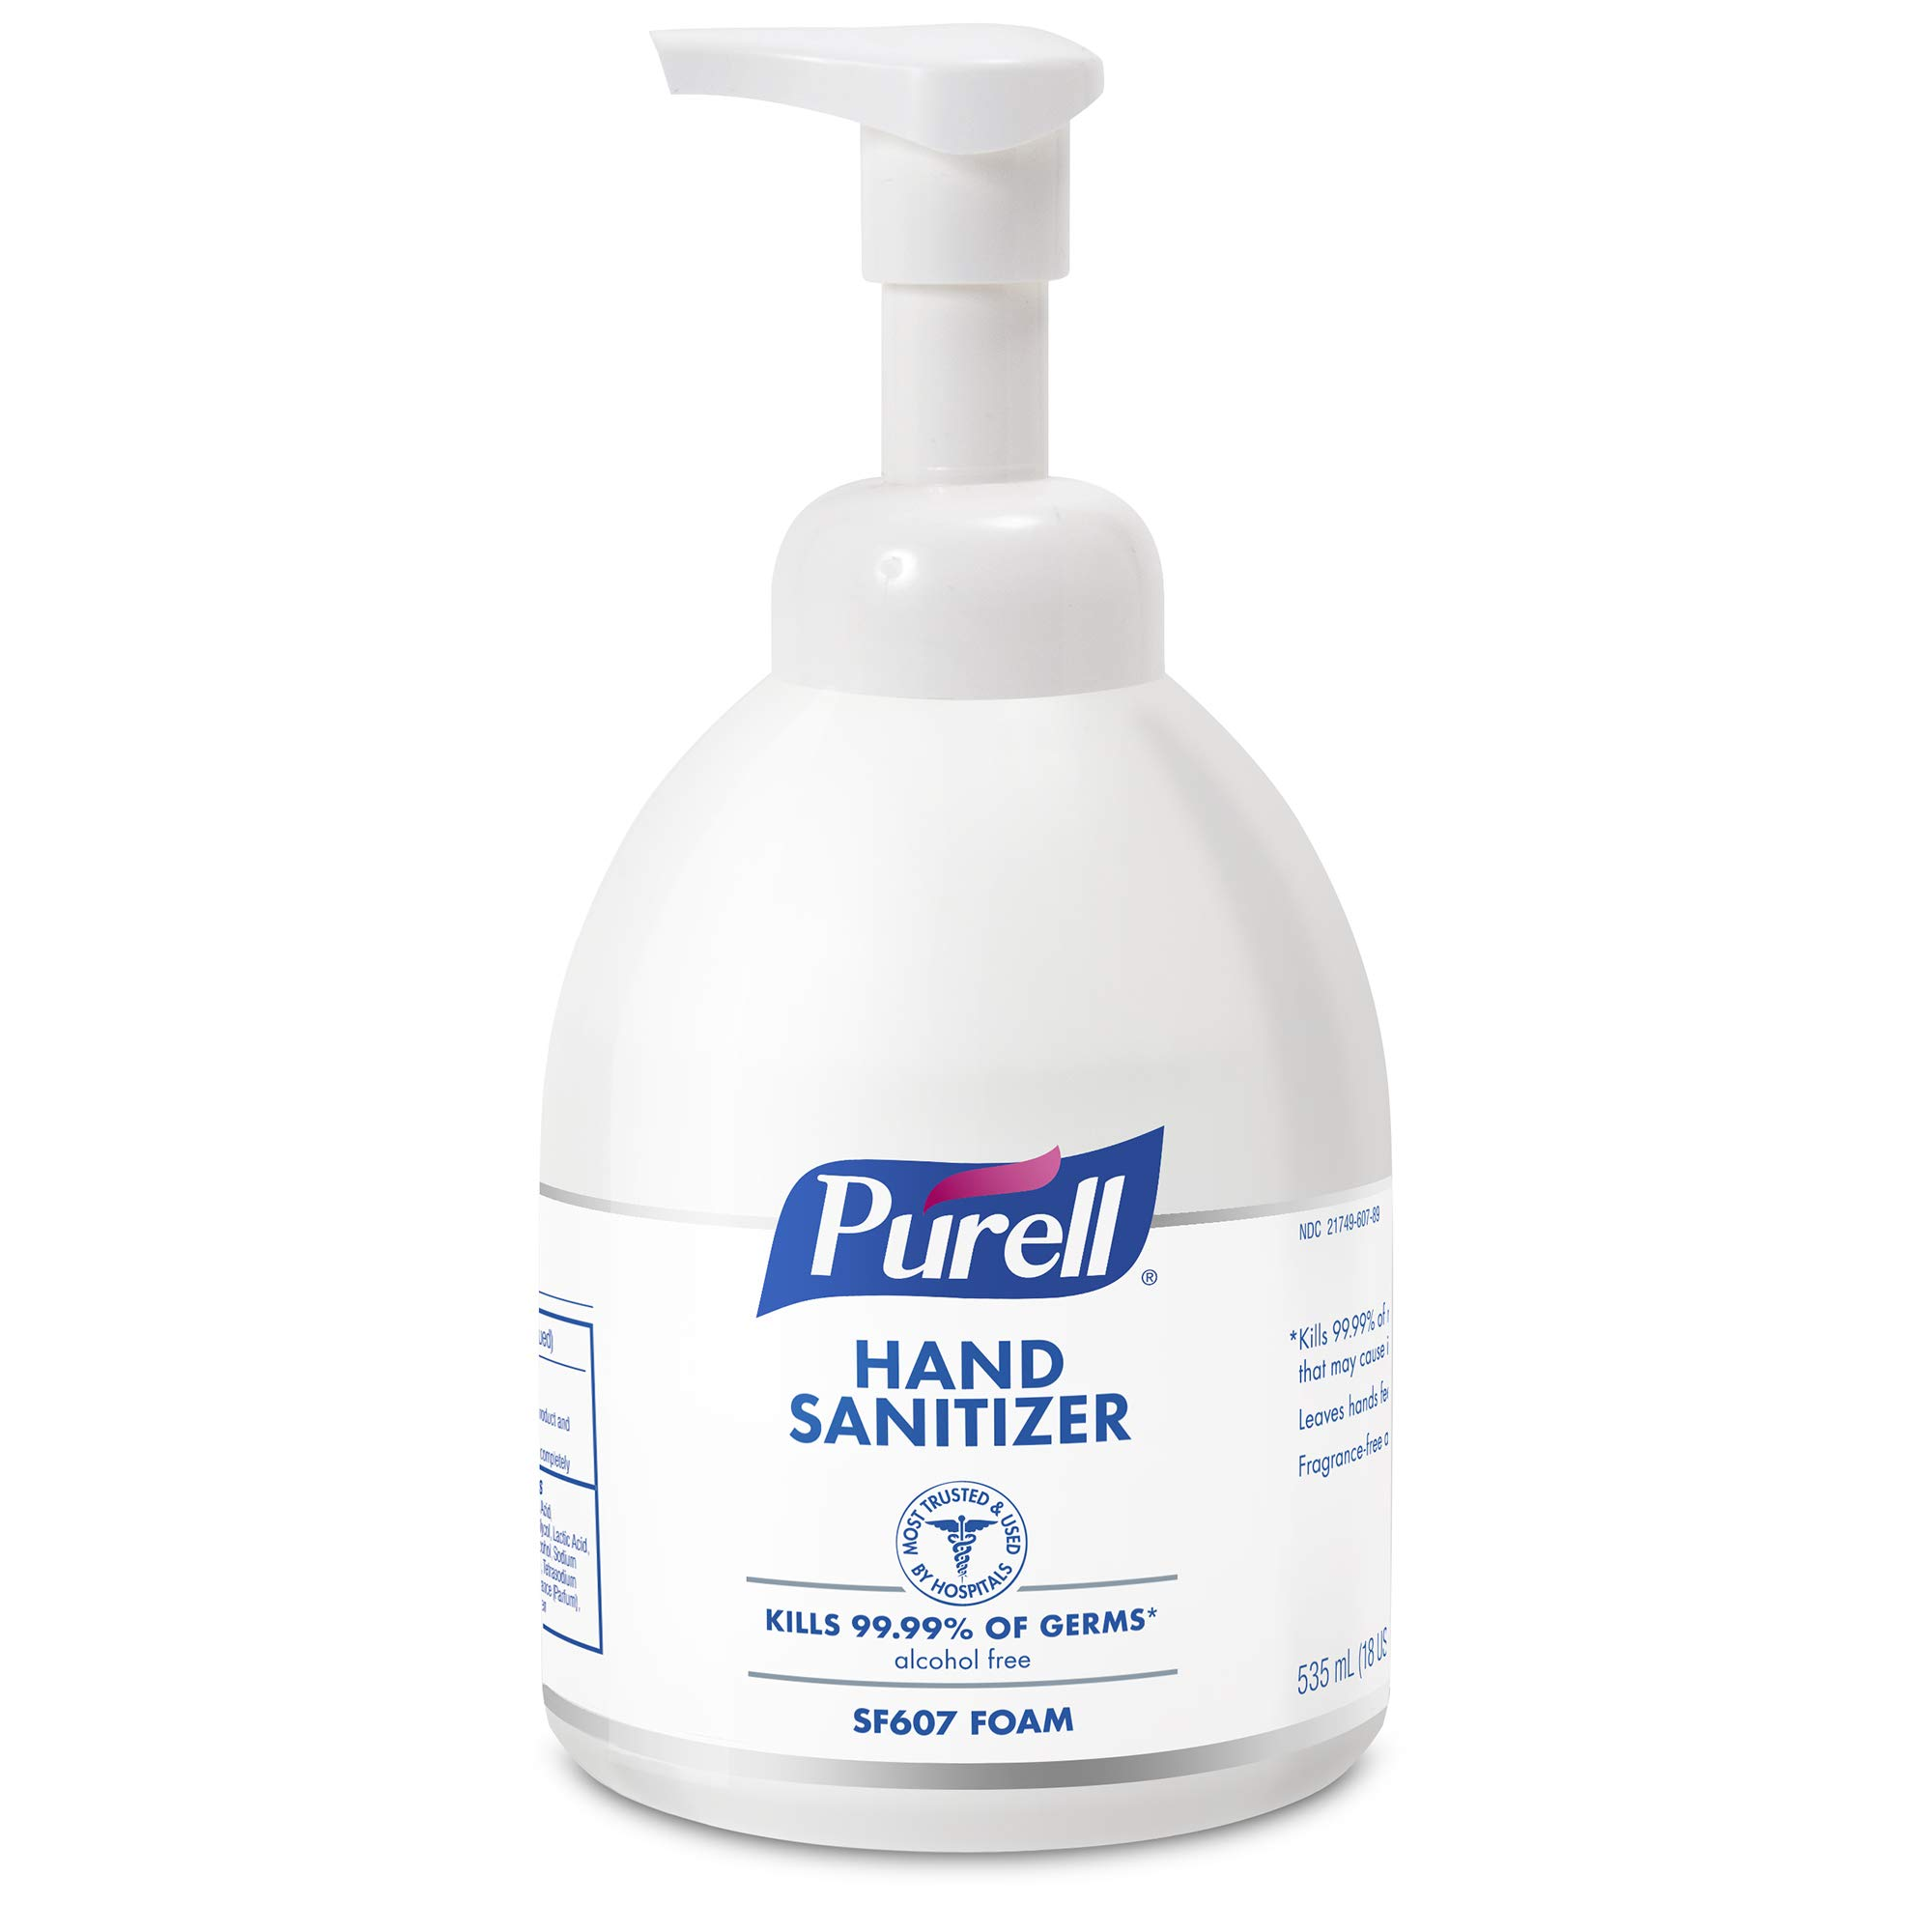 PURELL SF607 Advanced Hand Sanitizer Foam, Fragrance Free, 535 mL Sanitizer Counter Top Pump Bottles (Pack of 4) - 5784-04 by Purell